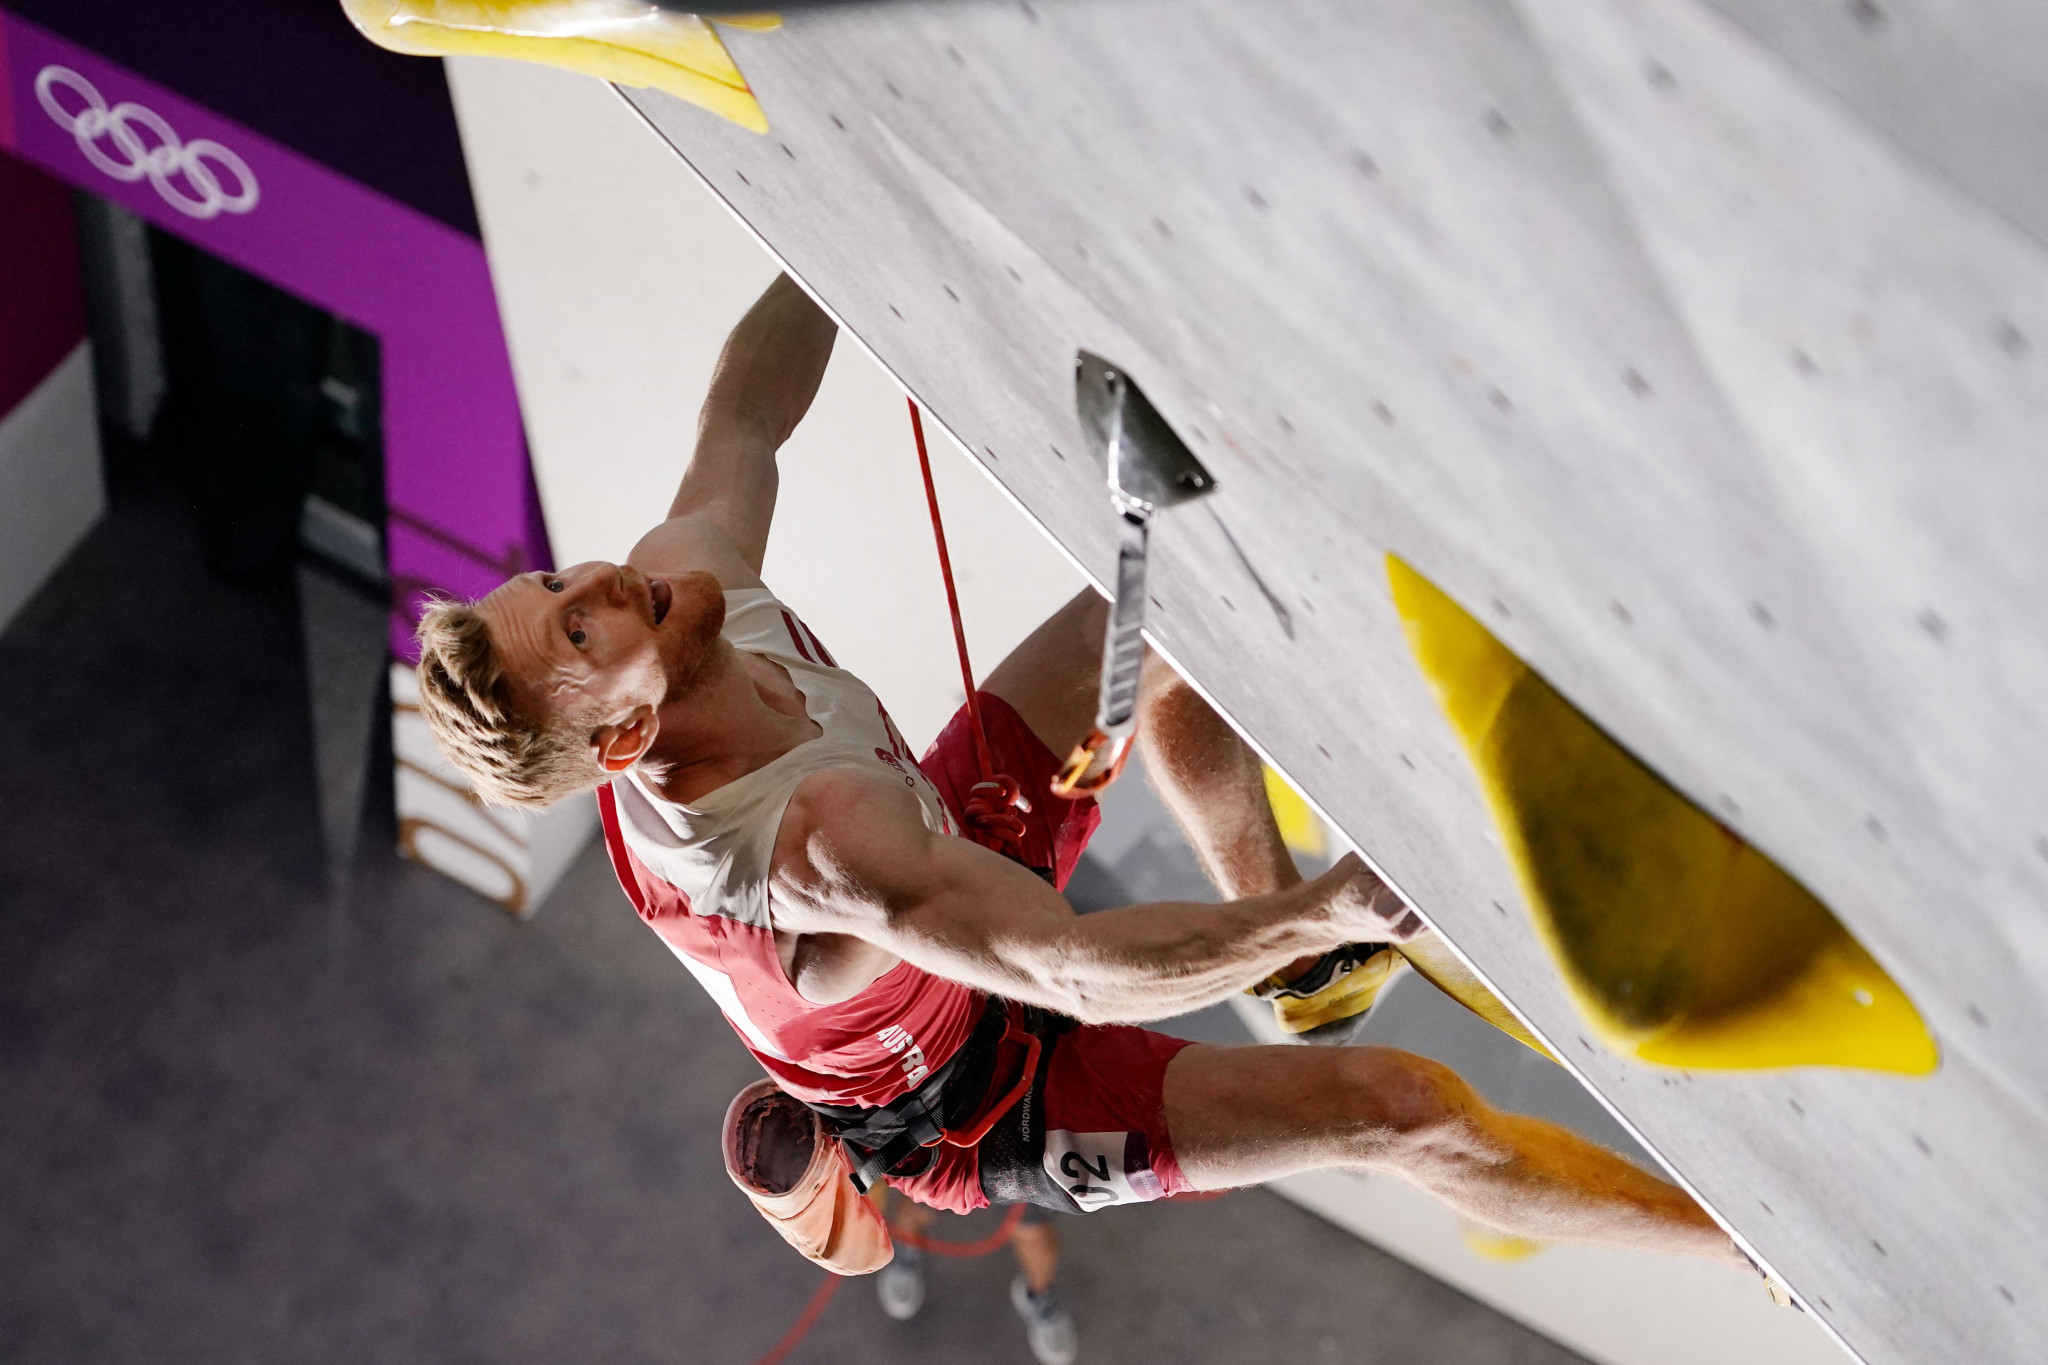 Sport climbing made its Olympic debut today with men's qualification ©Getty Images